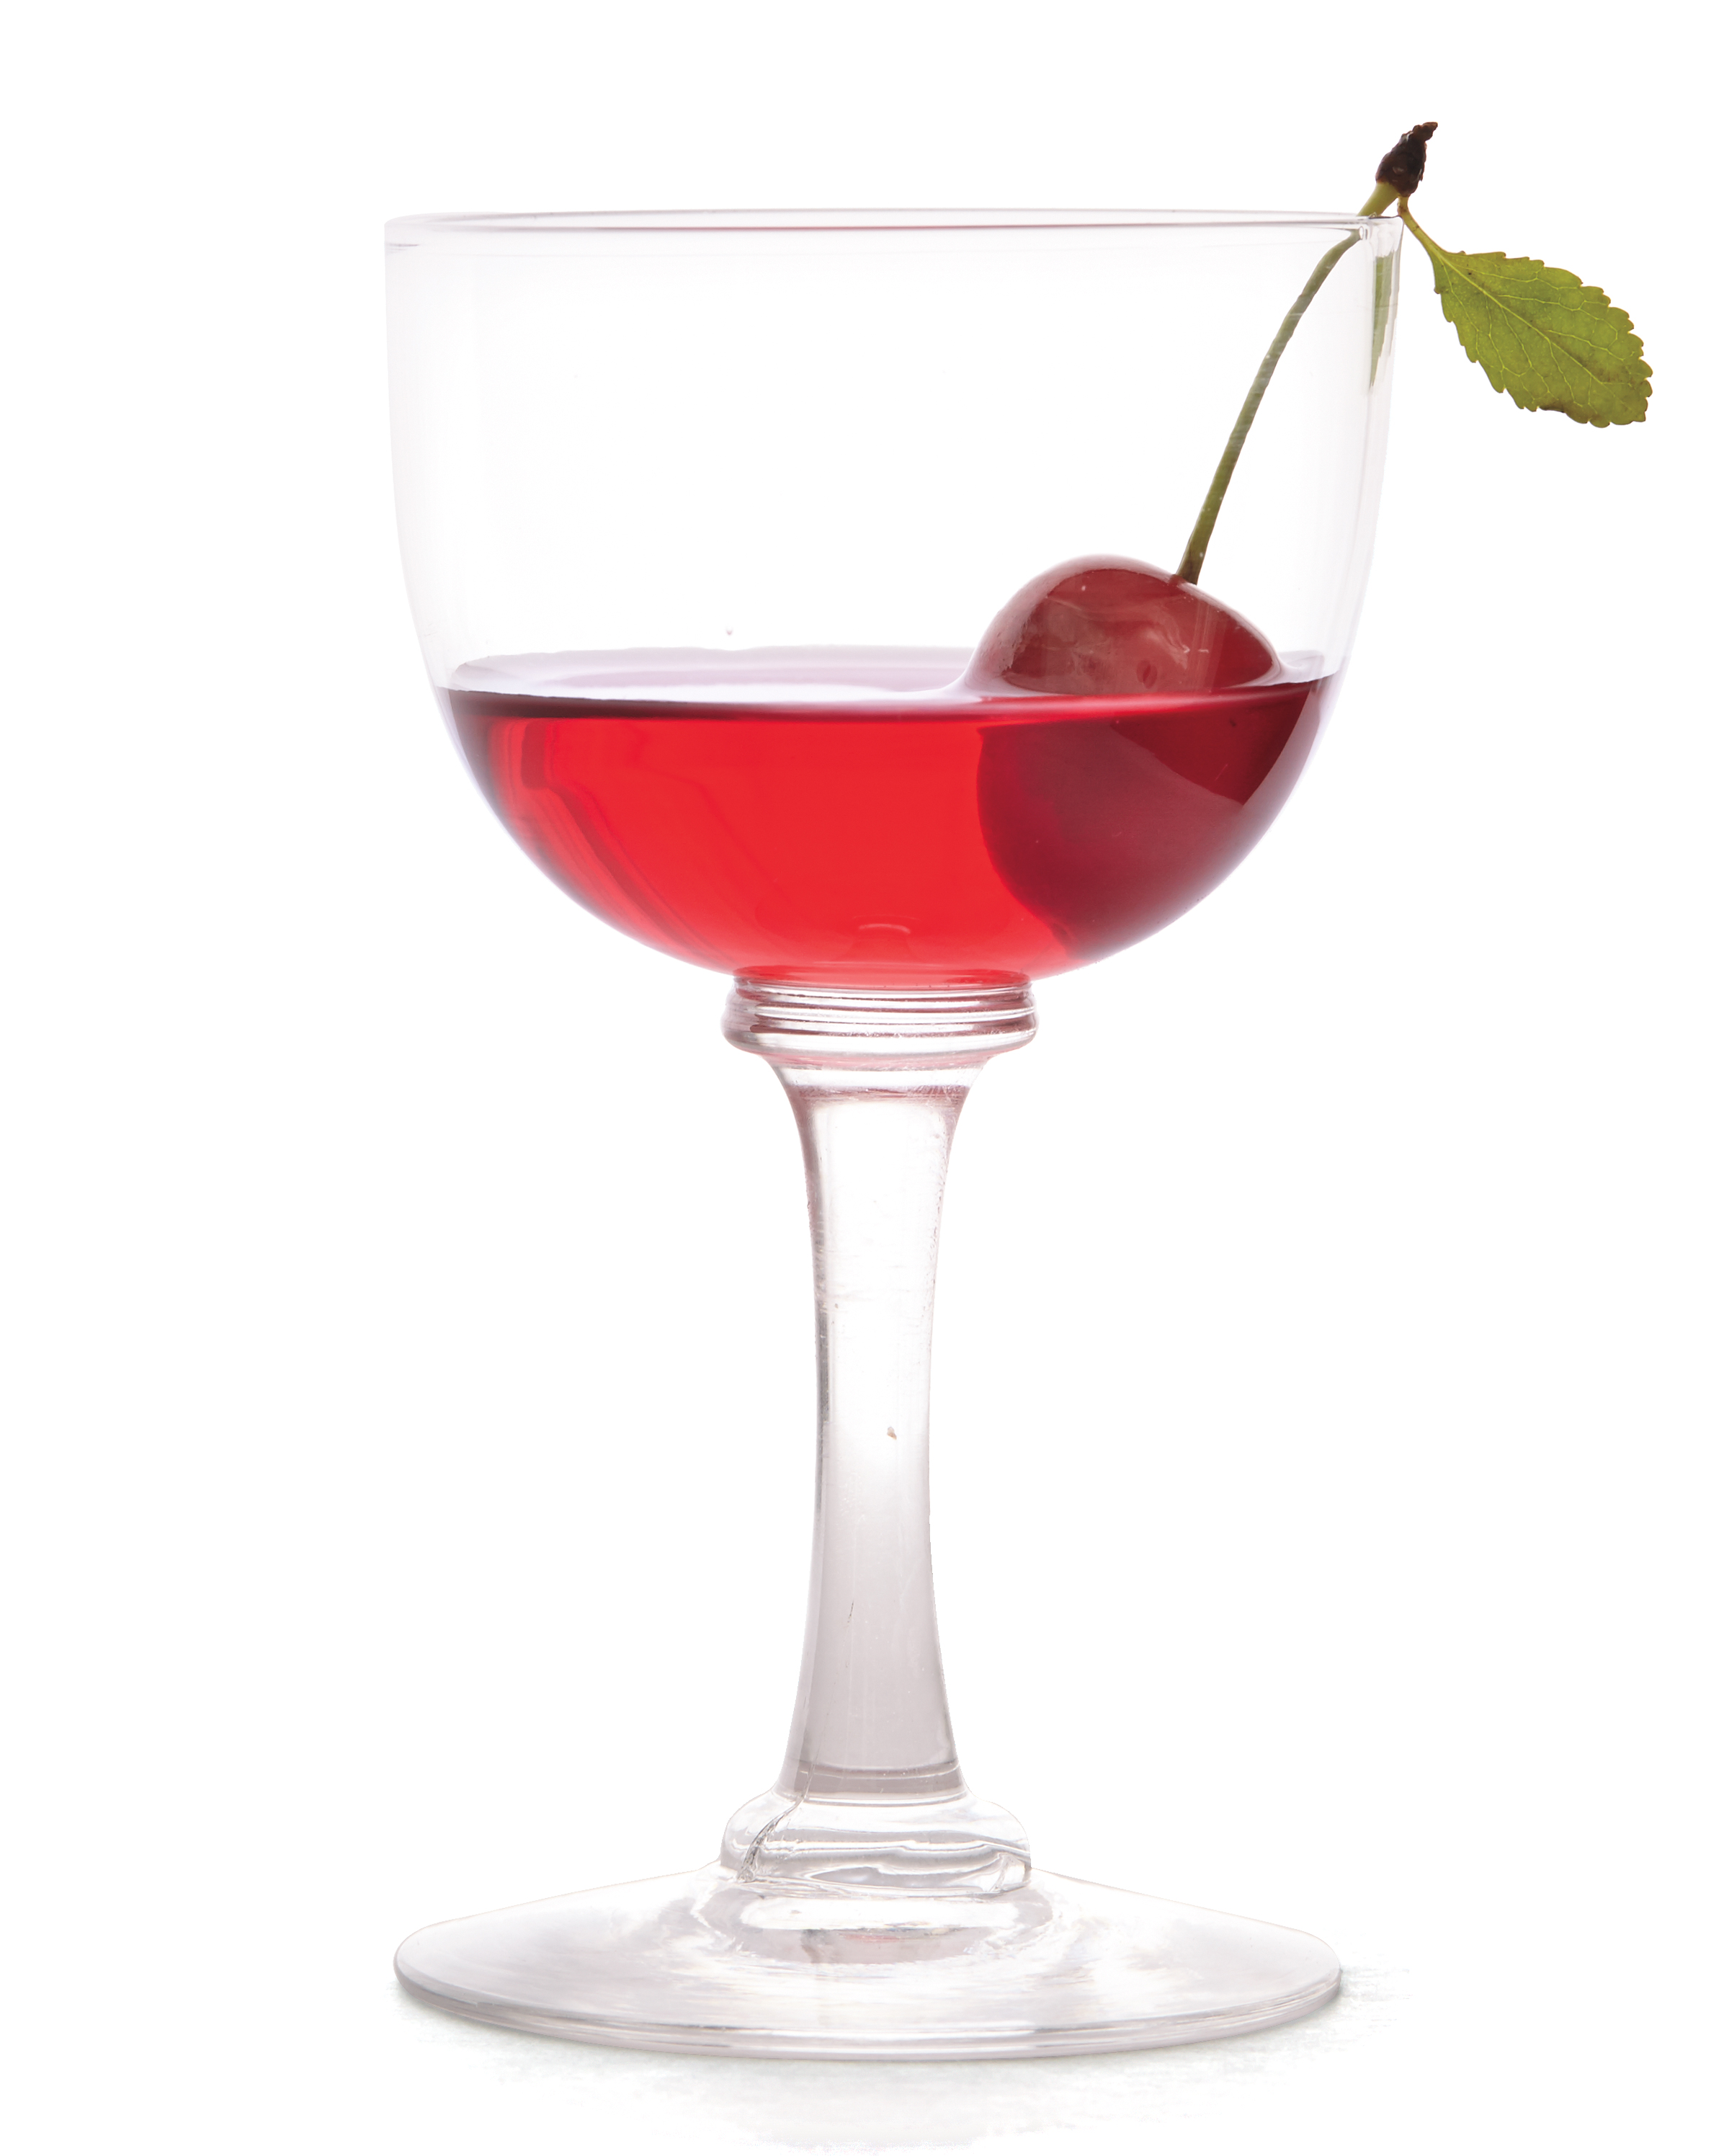 cherry-vodka-cocktail-ld110503-016.jpg